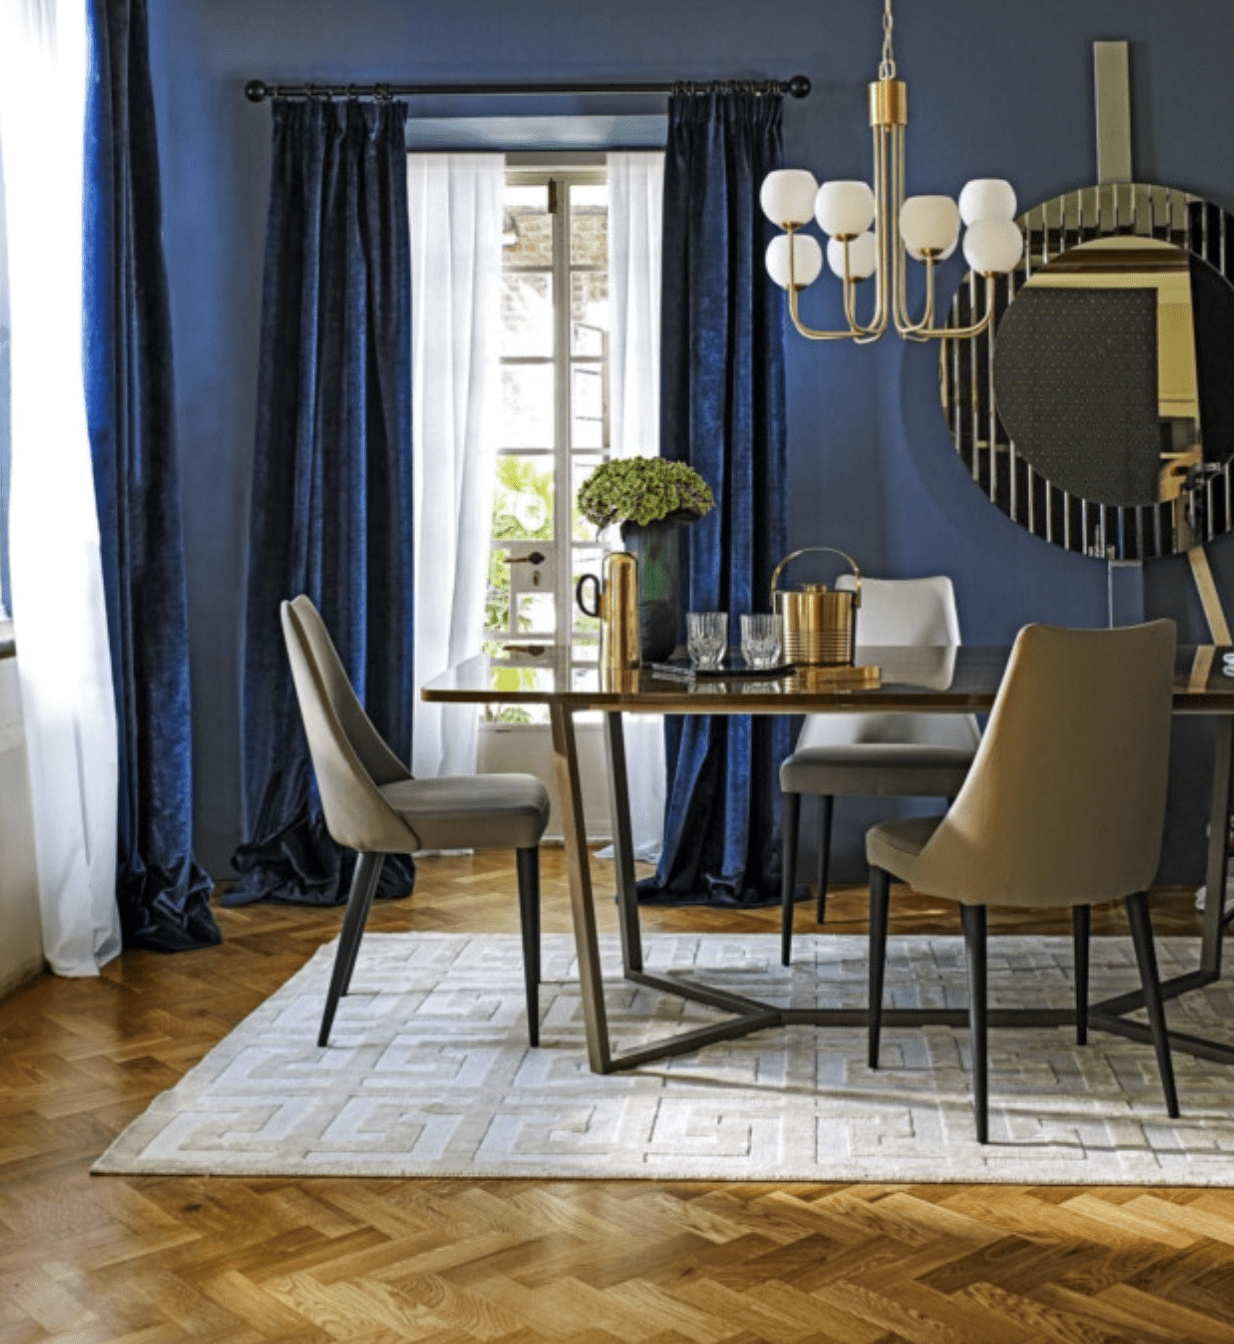 Opulent interiors - gold metallic finishes in a luxurious dining room